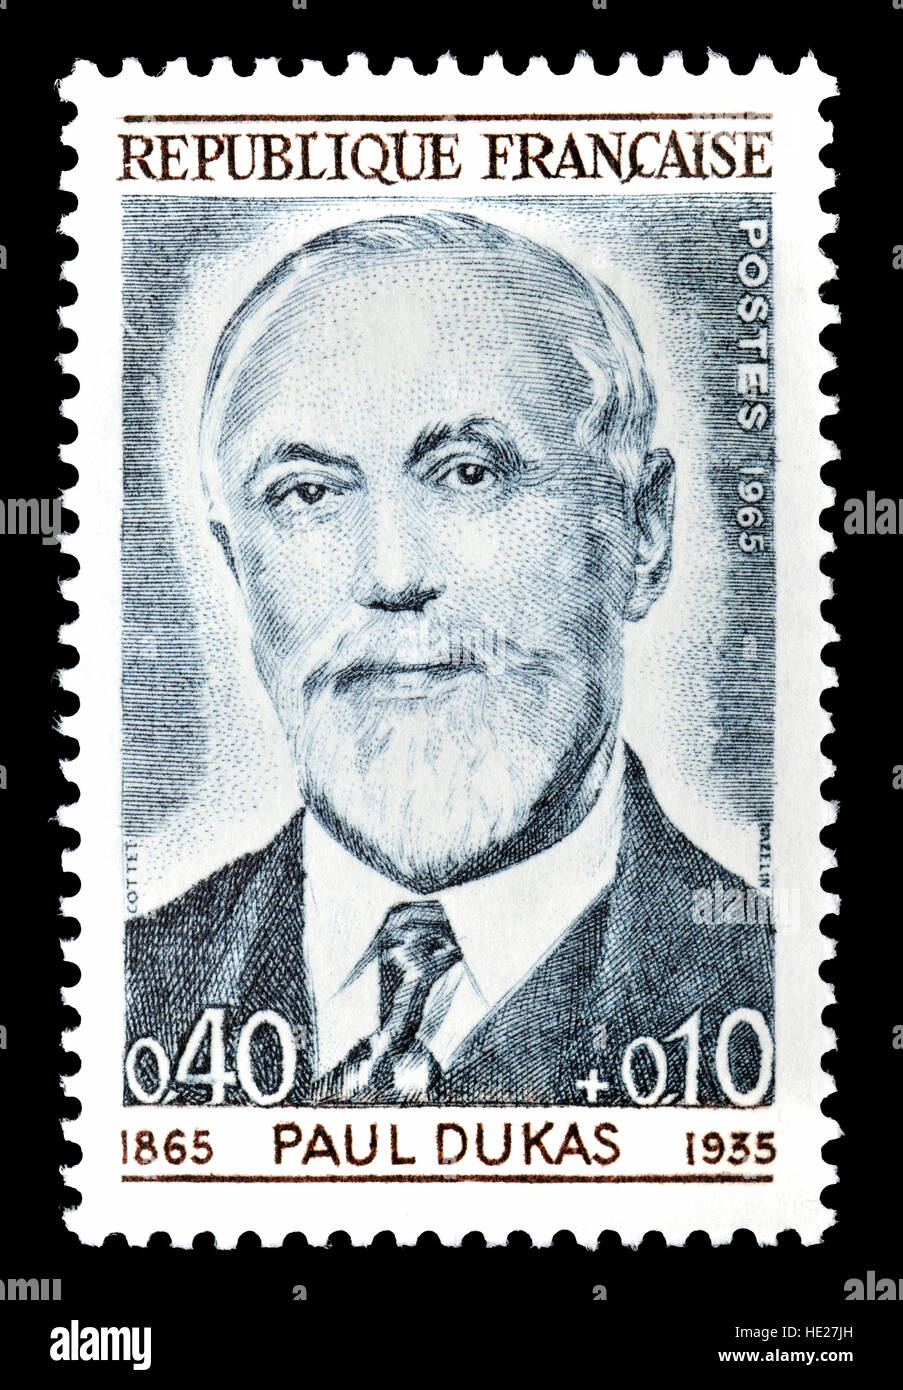 a biography of paul dukas a french compositor Can you give more accurate and better pronunciation for dukas in voice or text.